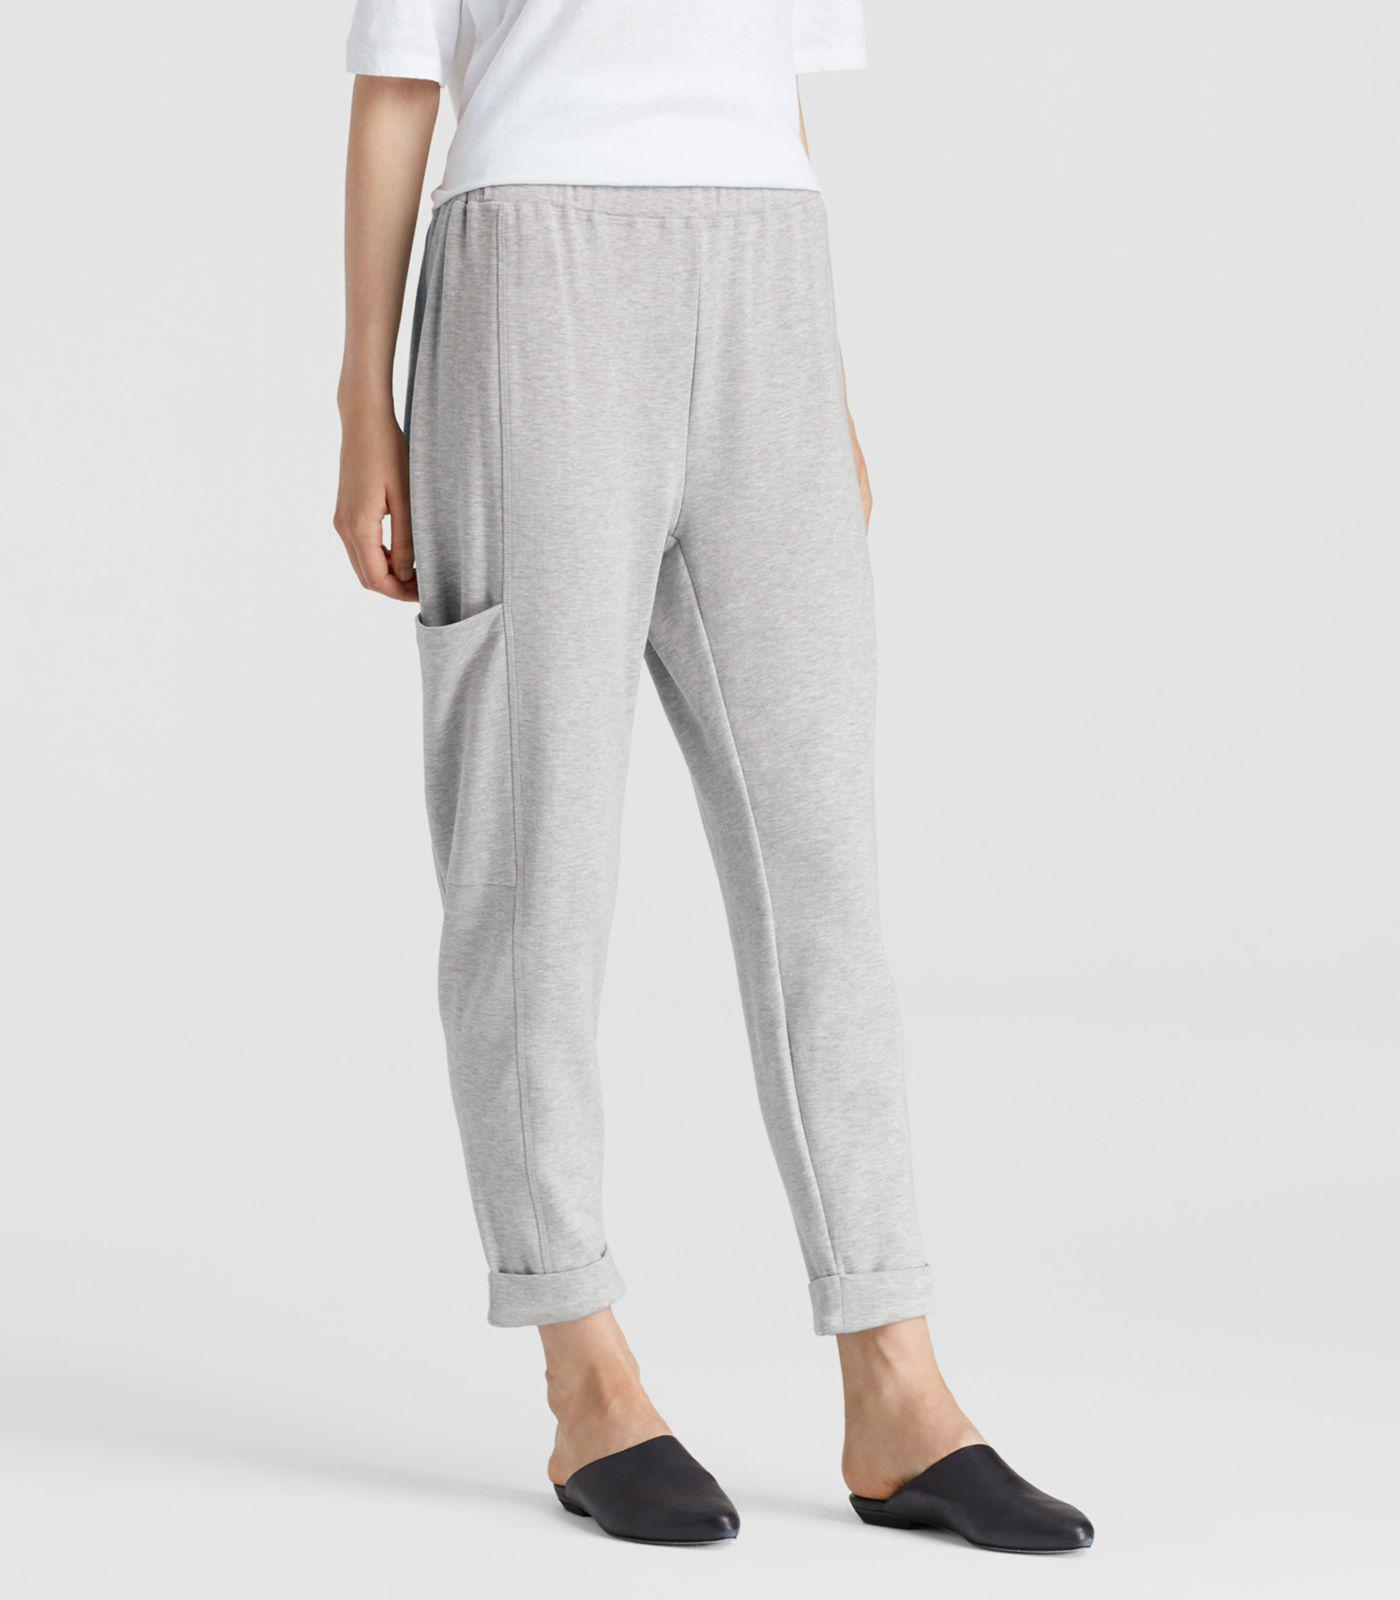 d06a77b433 Eileen Fisher - Gray Organic Cotton Fleece Slouchy Pants - Lyst. View  fullscreen